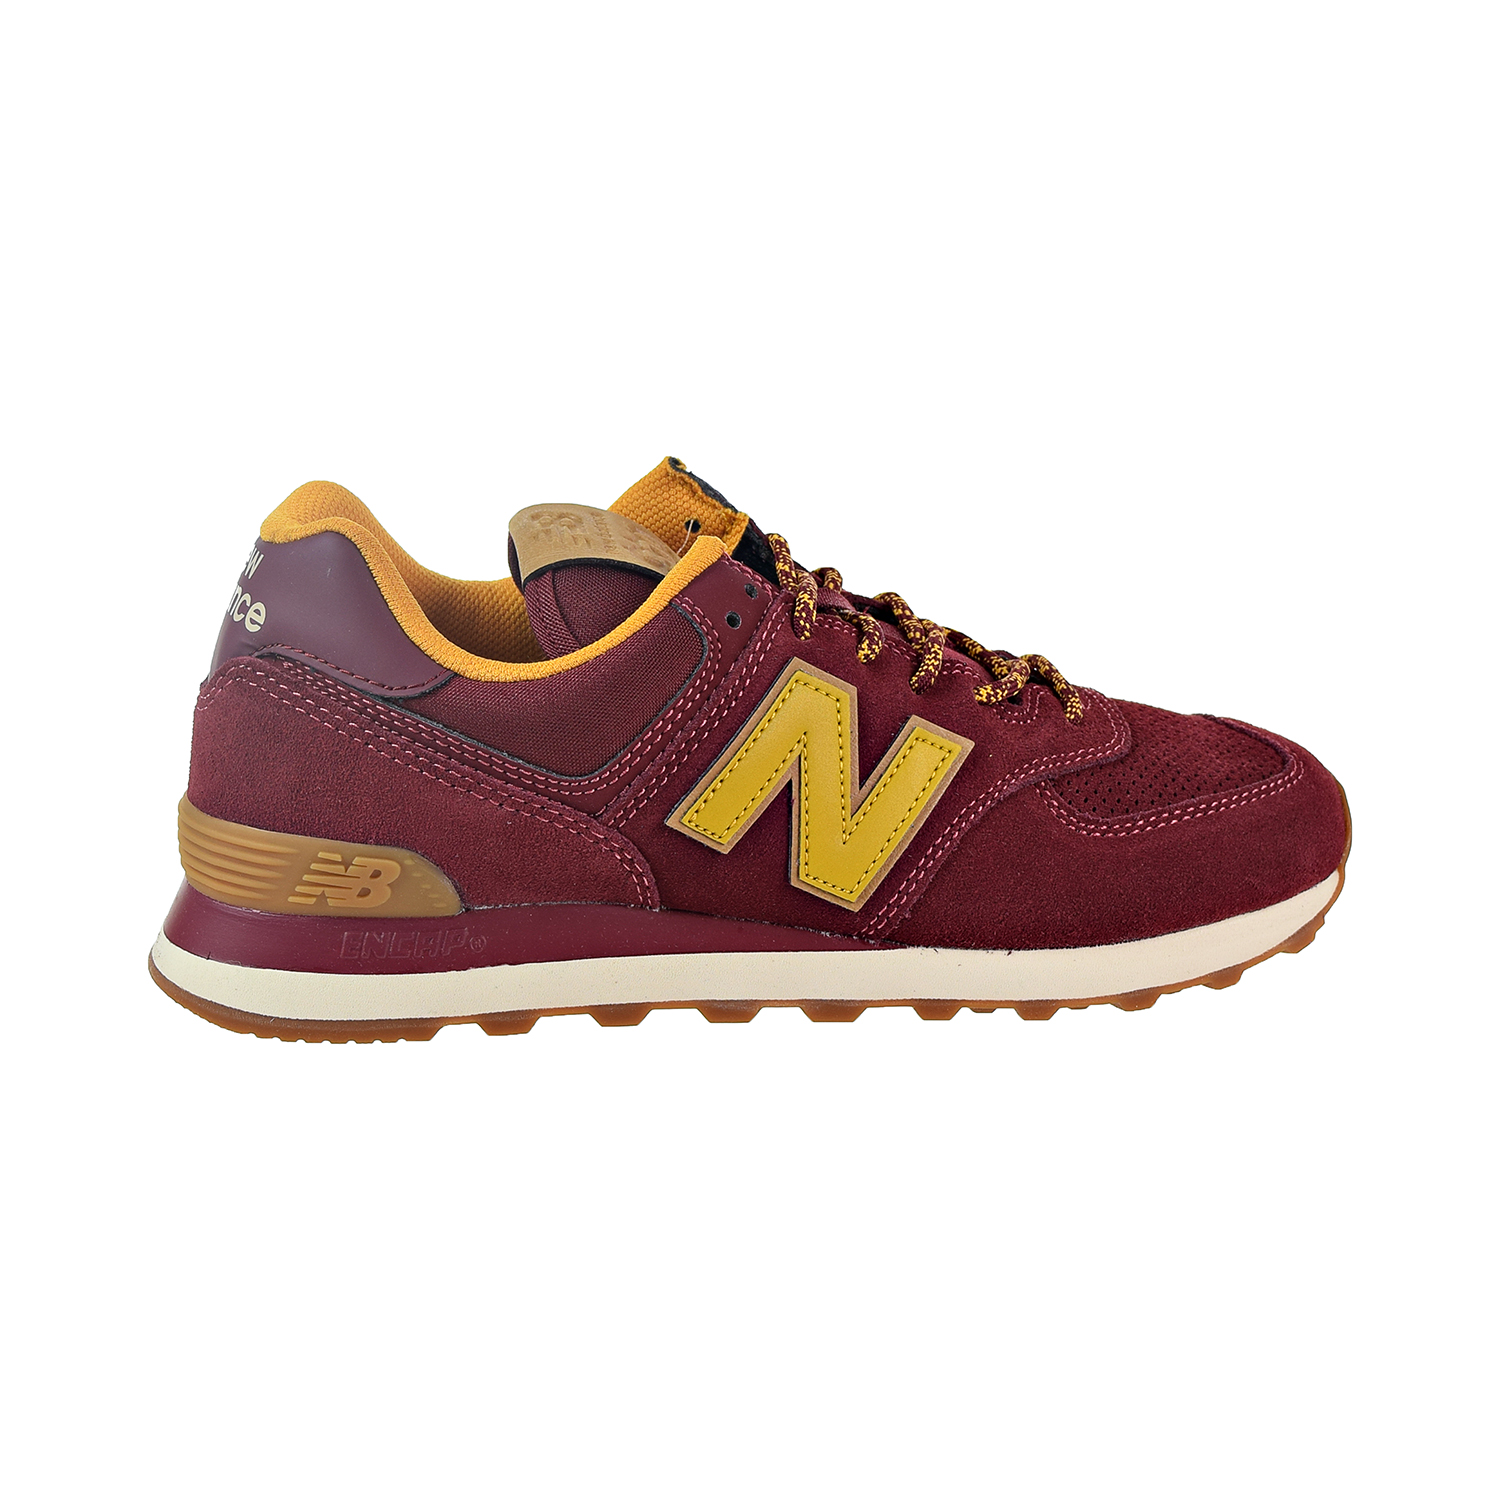 sports shoes 06fd1 a602c New Balance 574 Men's Shoes Mercury Red/Yellow ML574-OTC | eBay